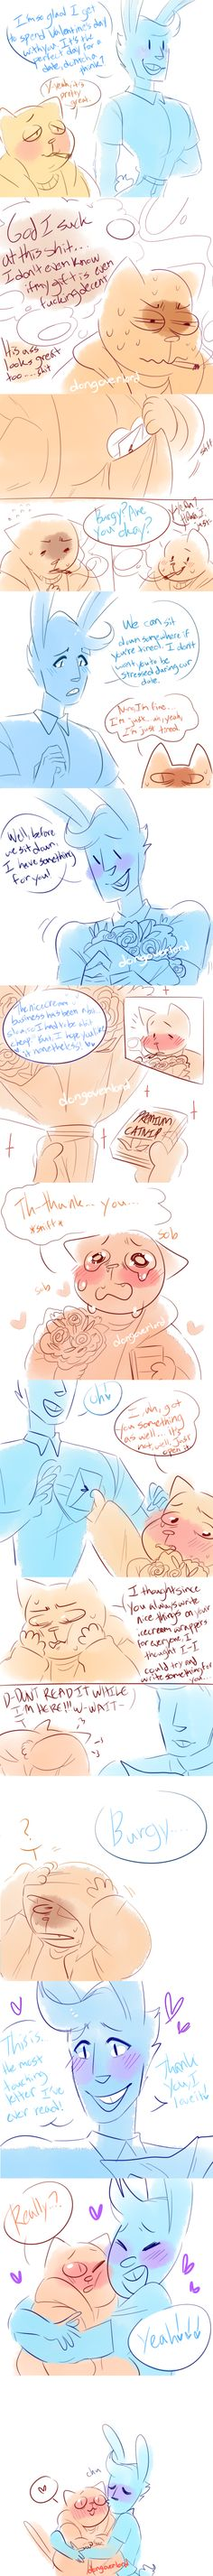 Nicepants Valentines Comic by dongoverlord on DeviantArt